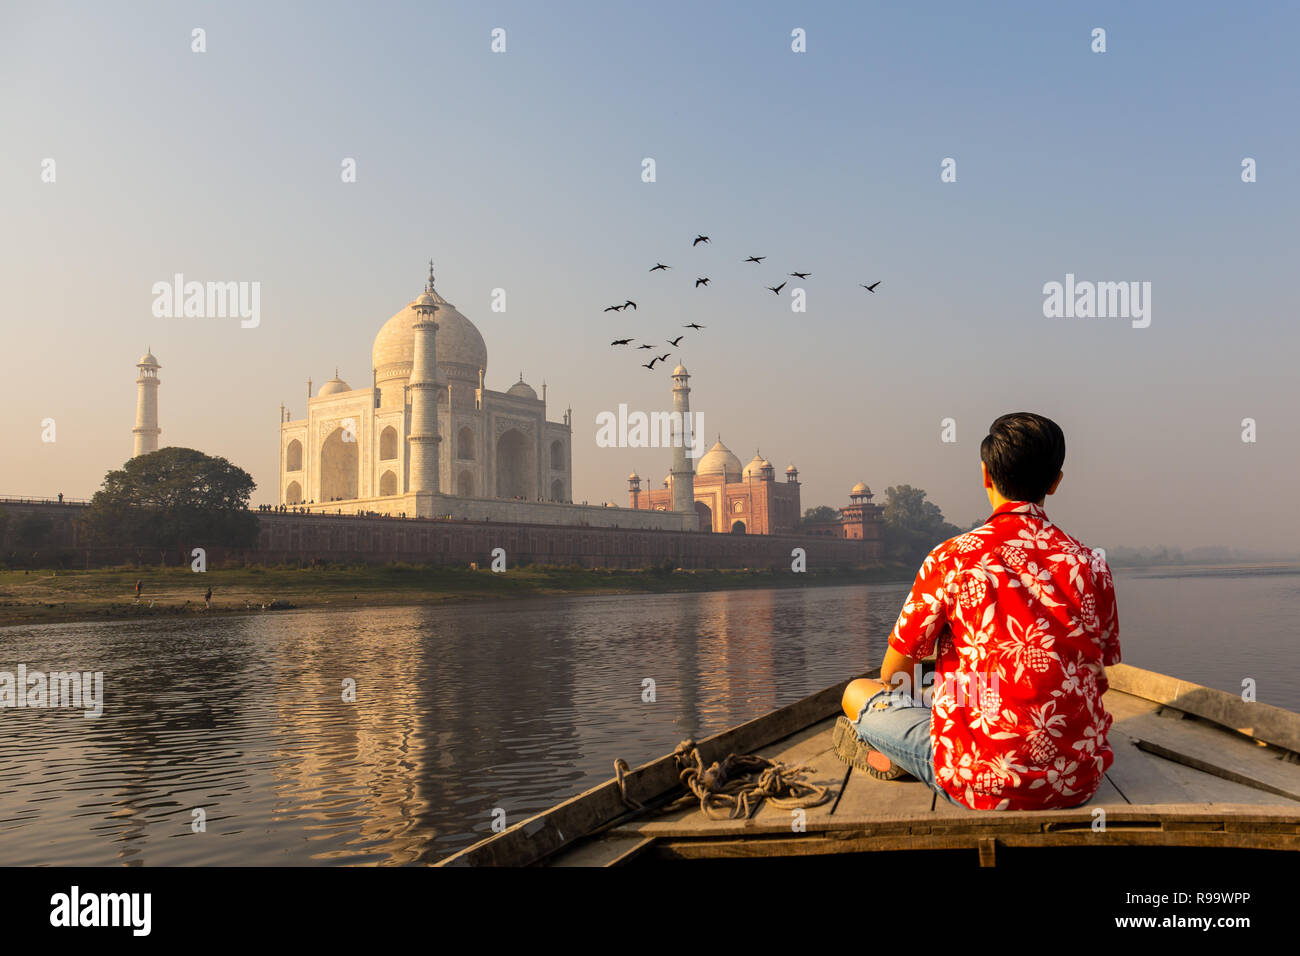 Man watching sunset over Taj Mahal from a wooden boat with bird flying over. Stock Photo